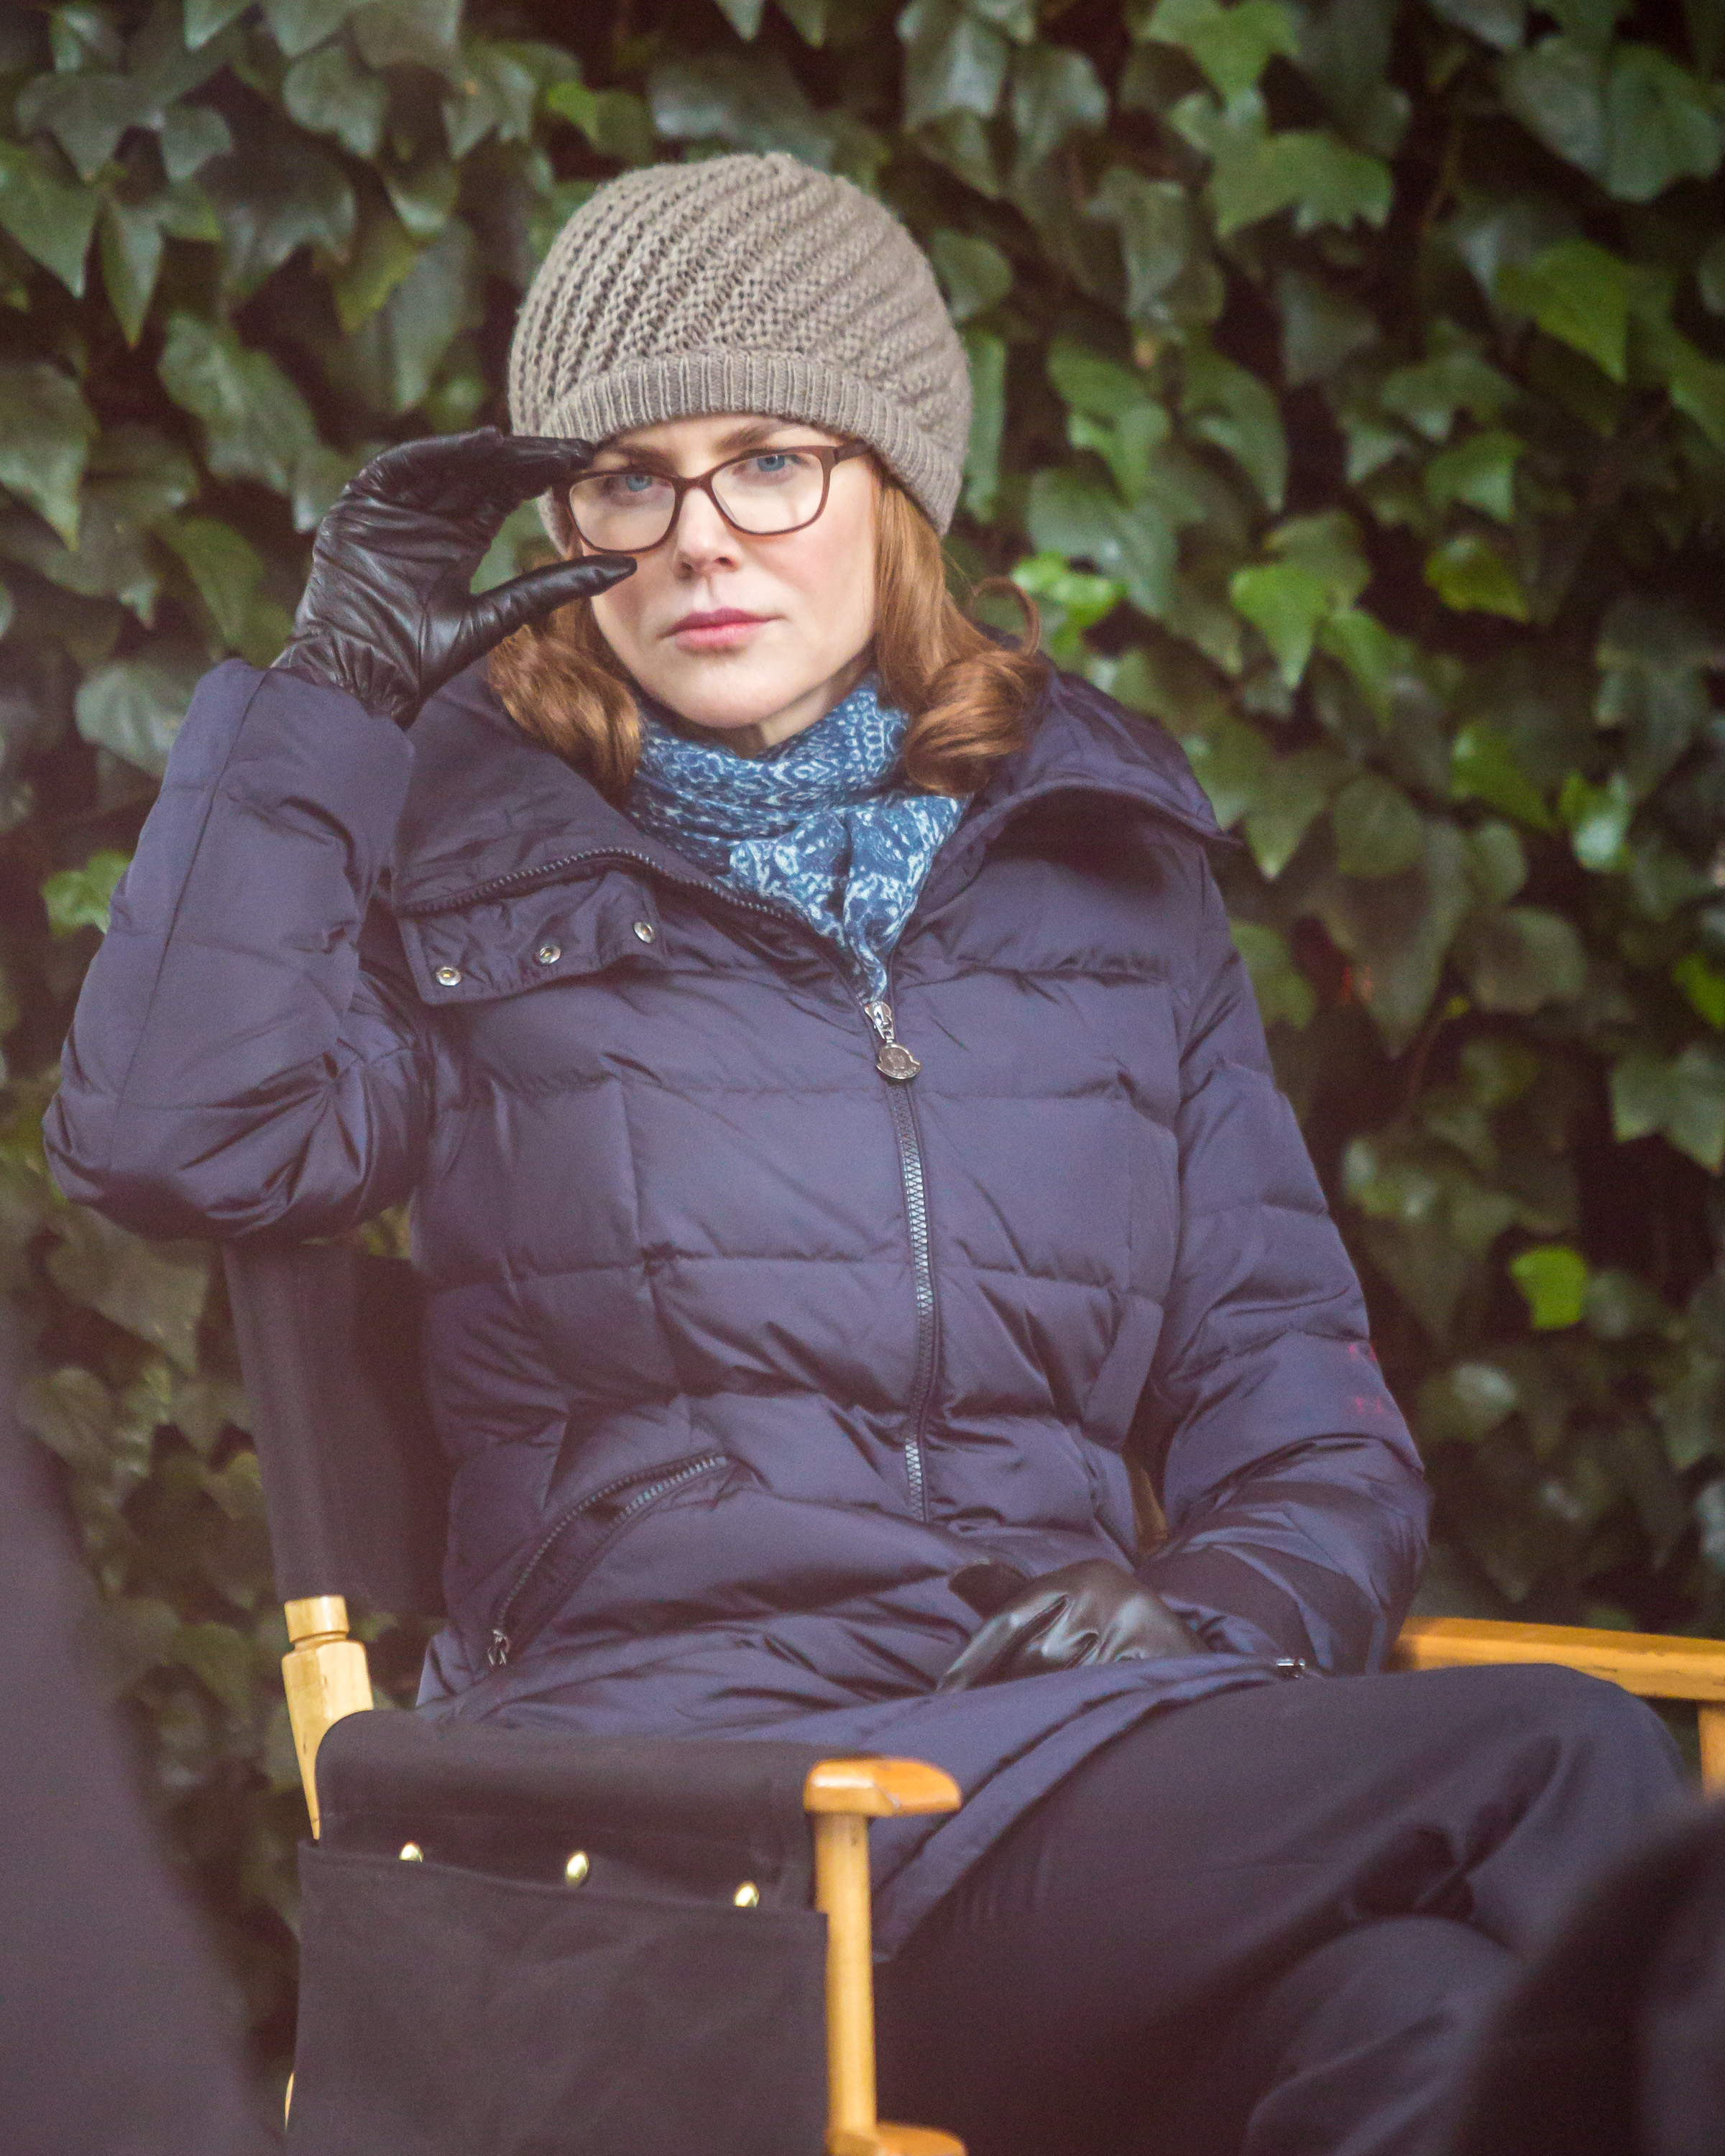 Nicole Kidman Rocks Eyeglasses In Puffer Jacket On NYC Set Of Untouchable